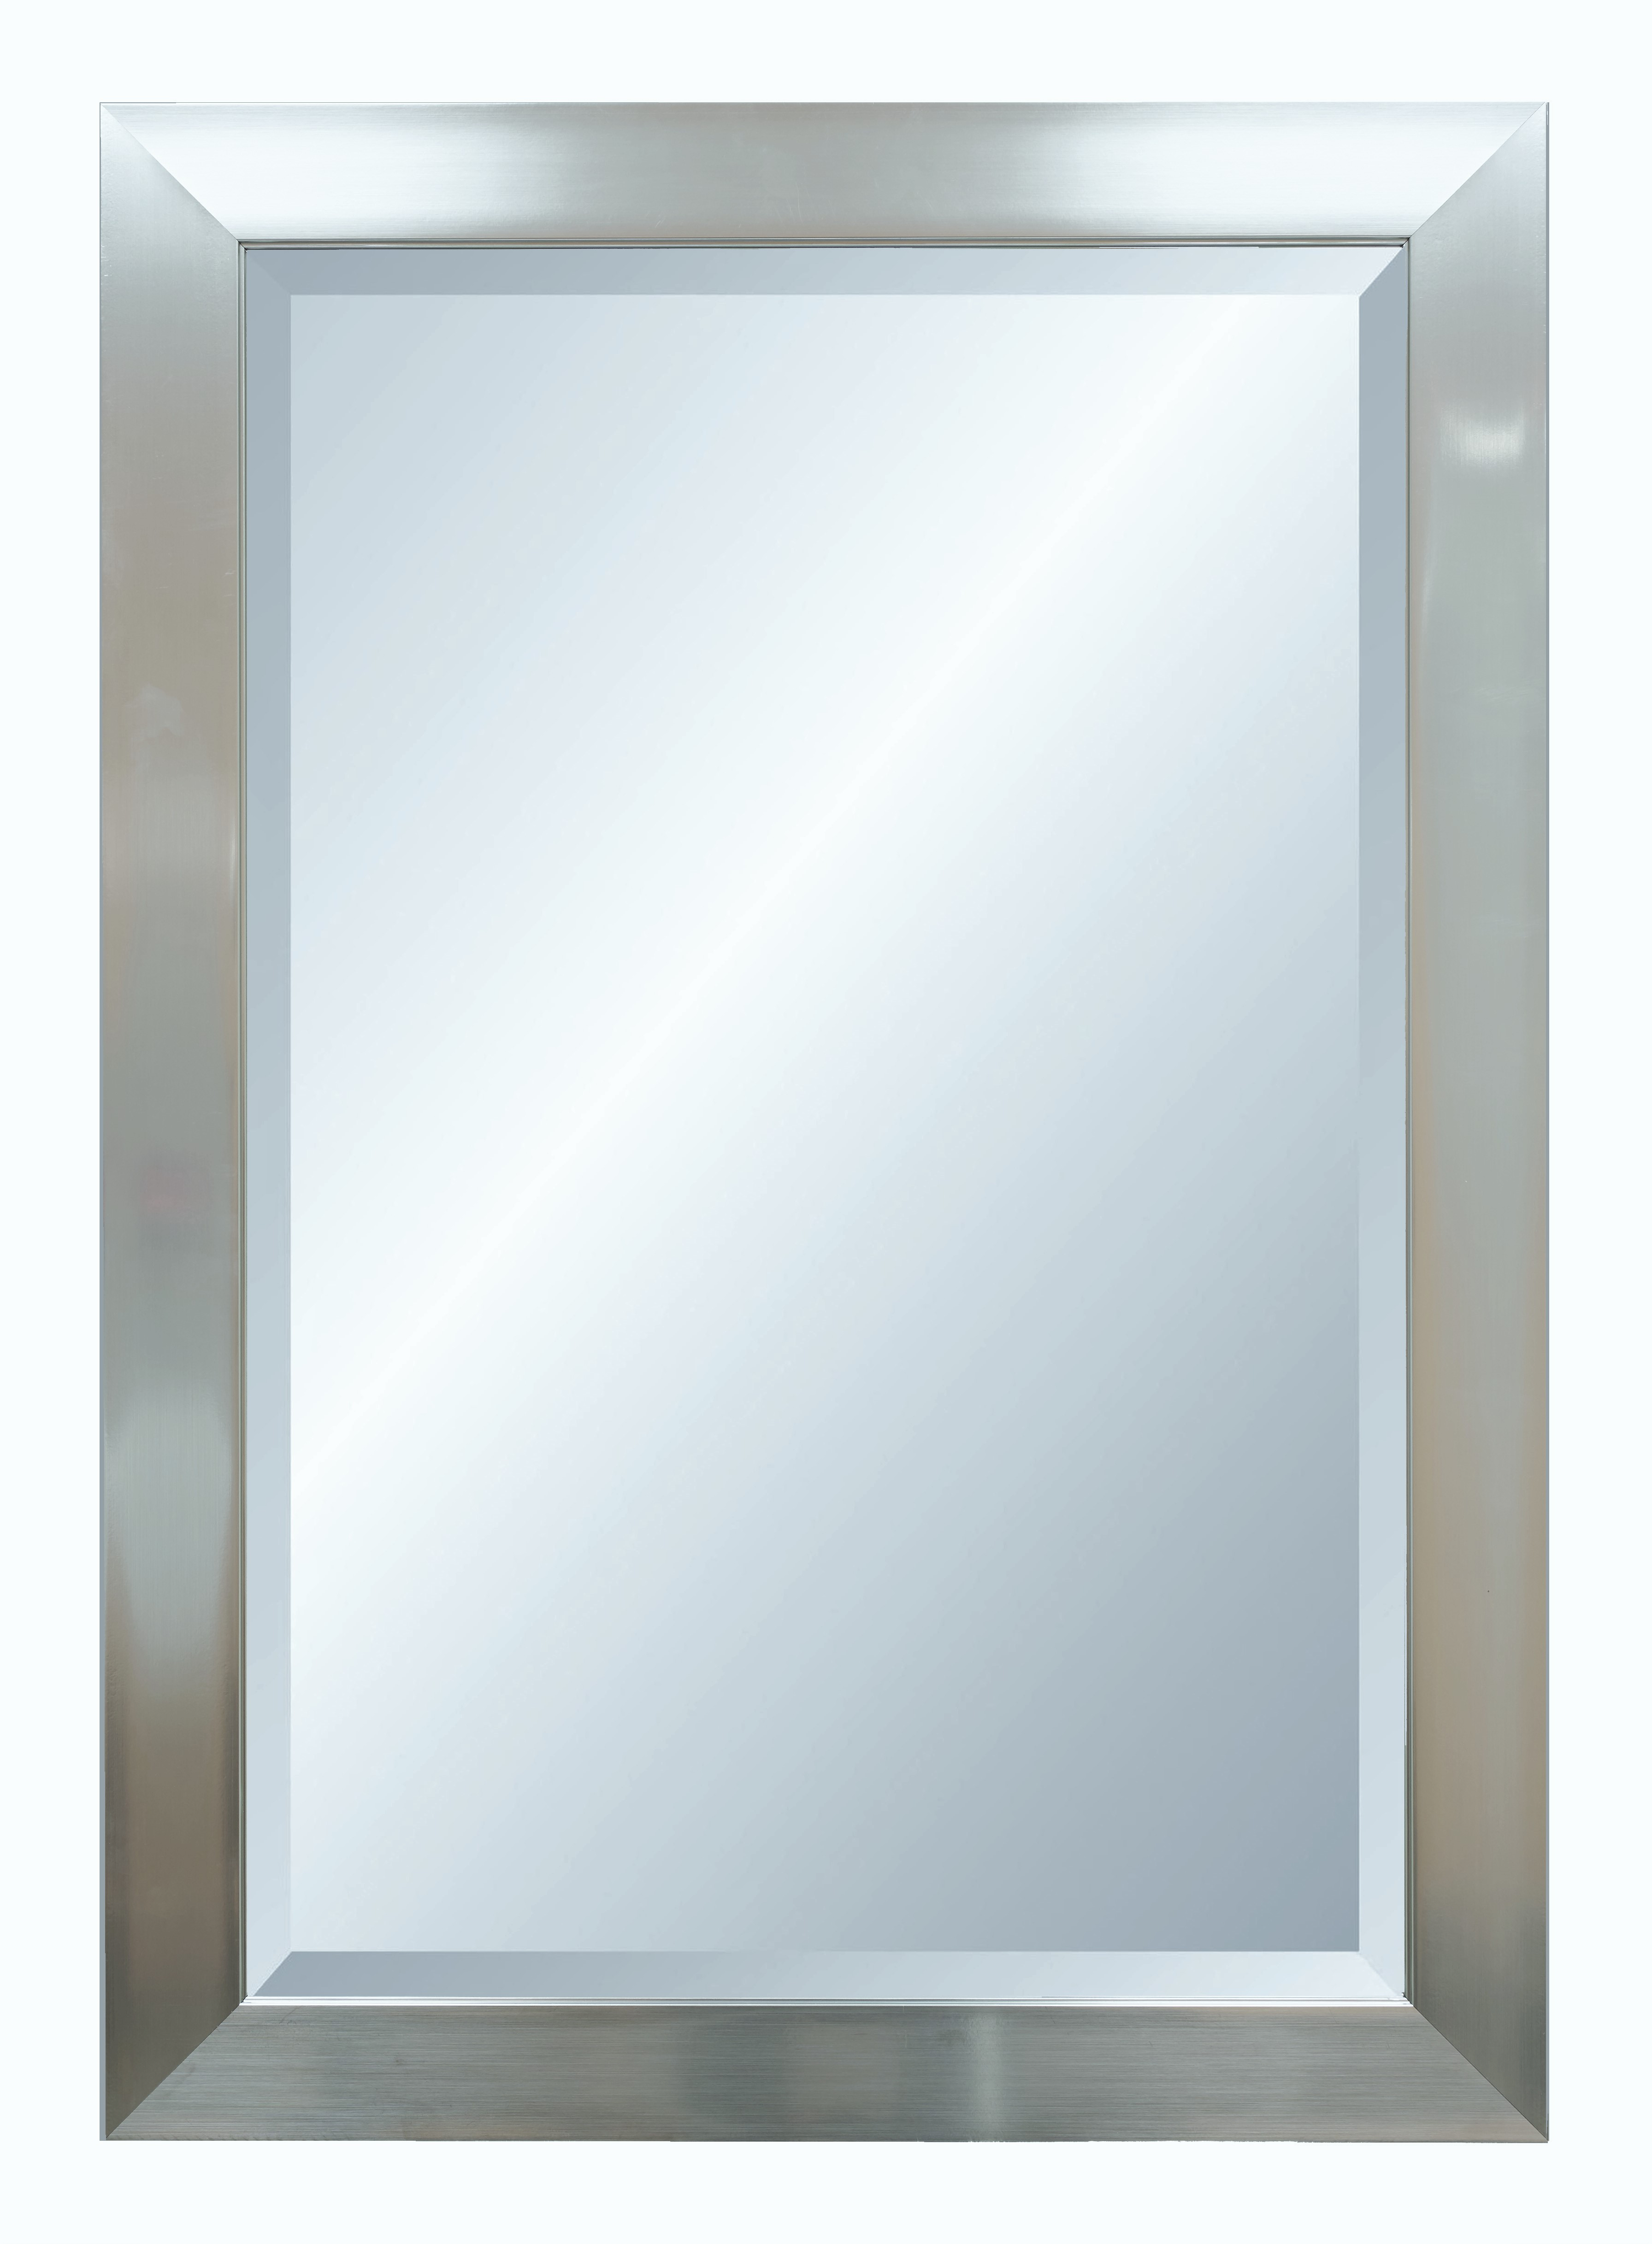 Alpine Fine Furniture 4151 Vibe Silver Wall Mirror with Bevel - 29 x 41 in.